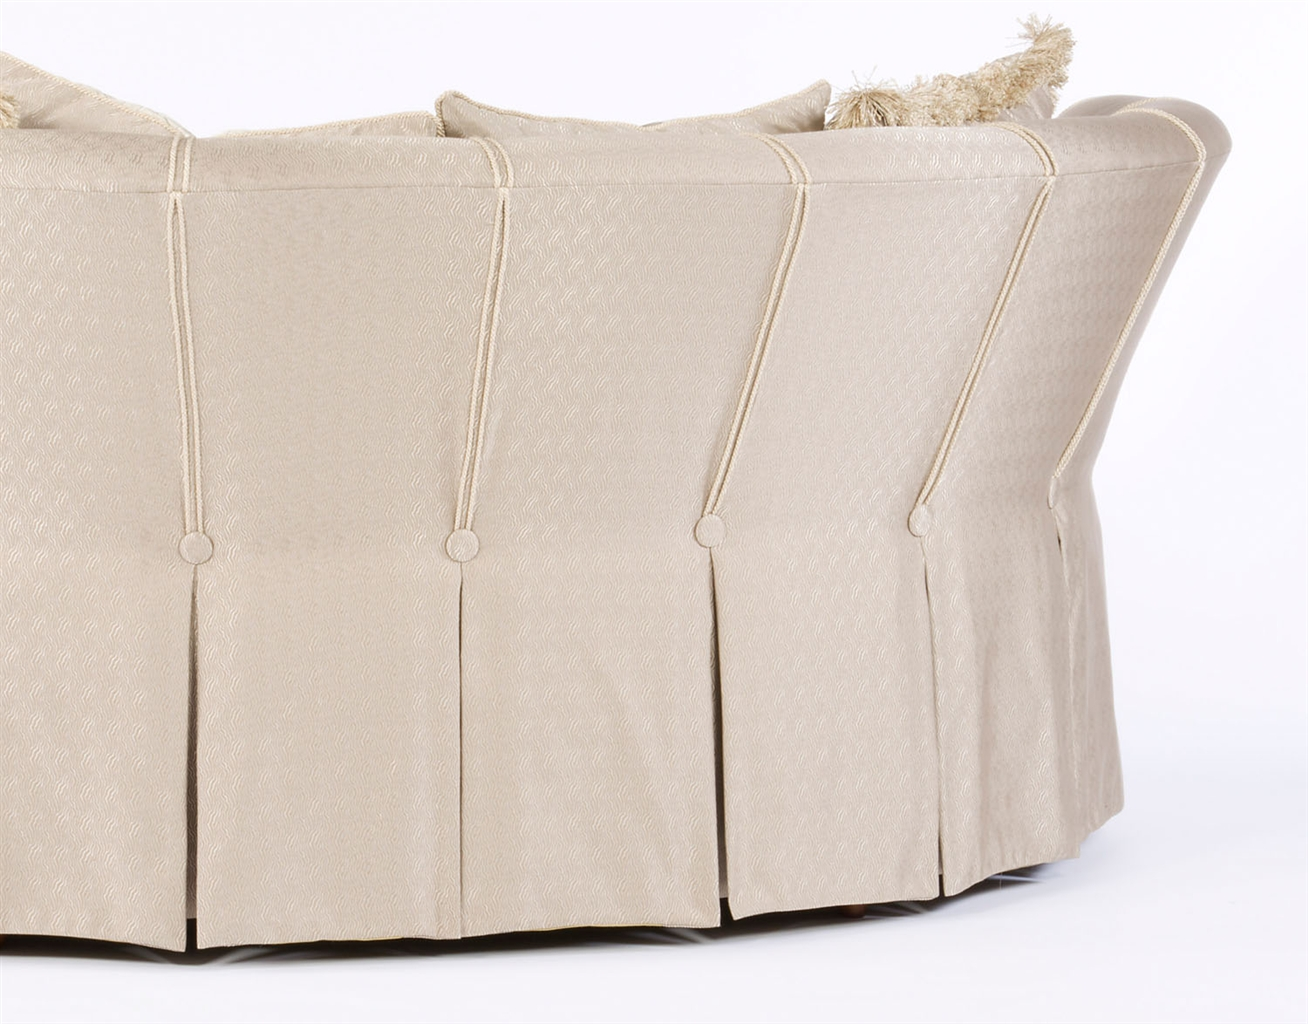 high end upholstered furniture. luxury leather u0026 upholstered furniture high end sleek sofa v